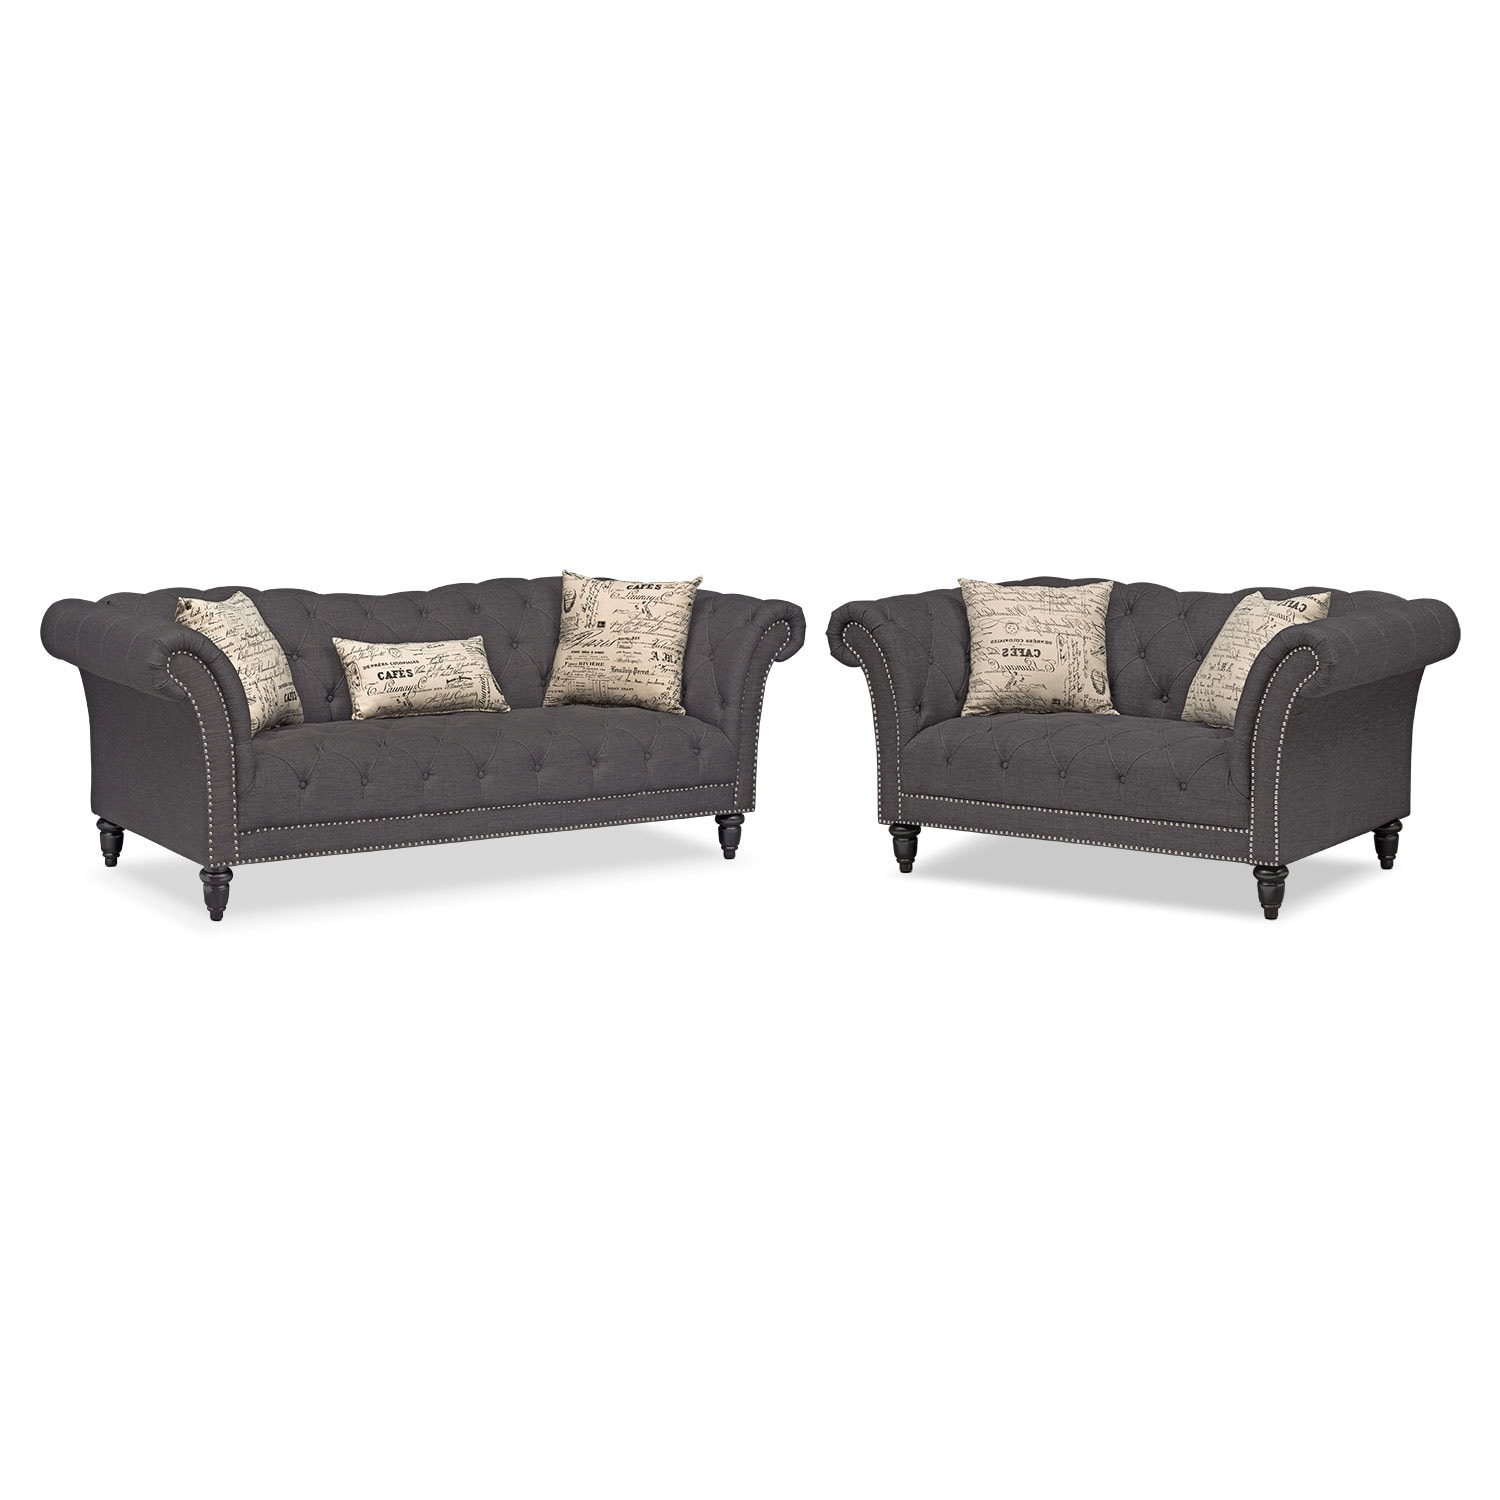 The Marisol Collection - Charcoal | American Signature Furniture